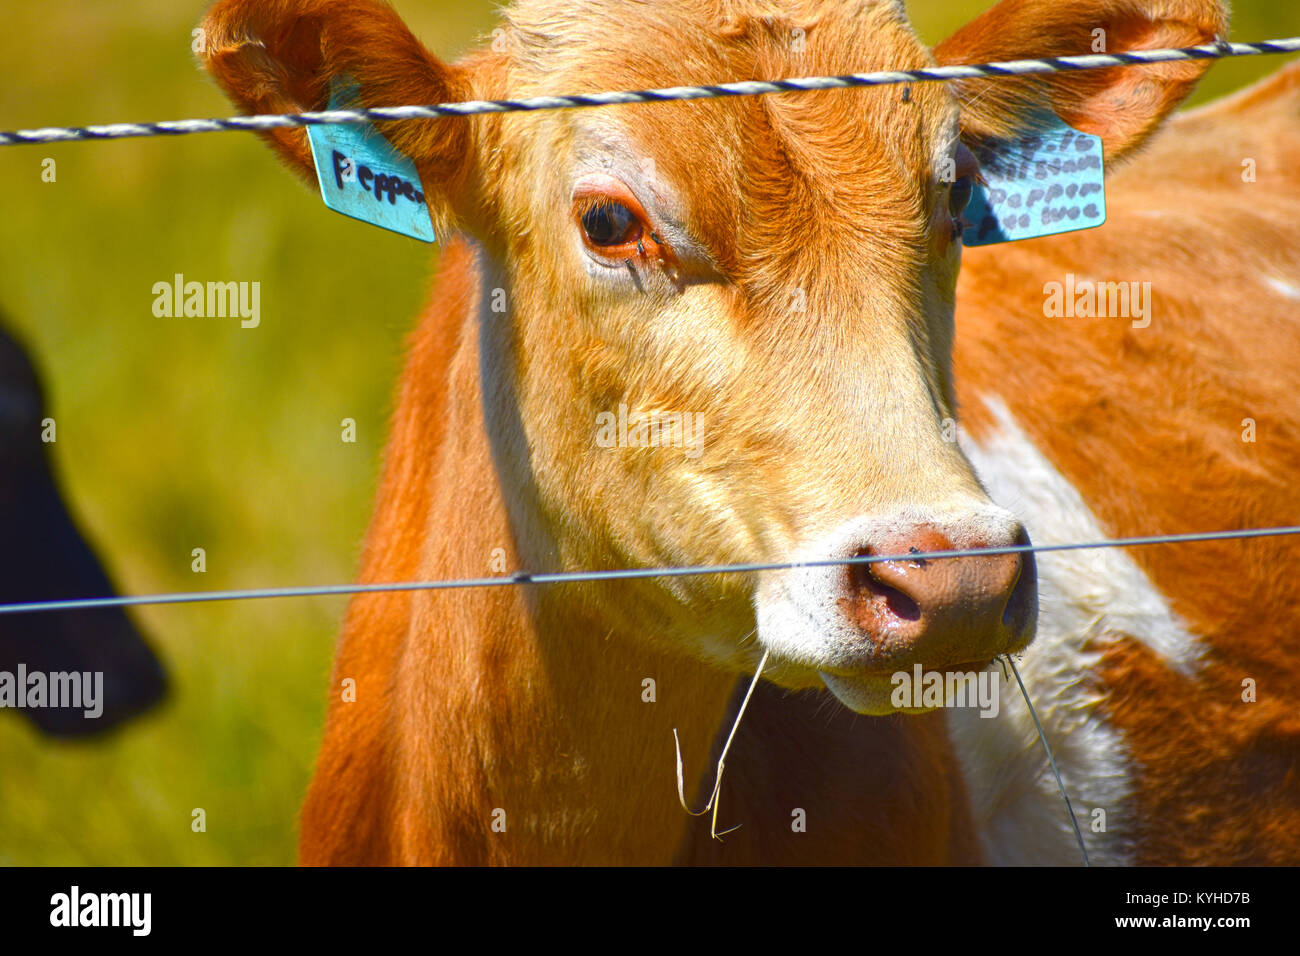 Pepper the Prize Winning Cow with grass in her mouth and a few flies on her face. - Stock Image